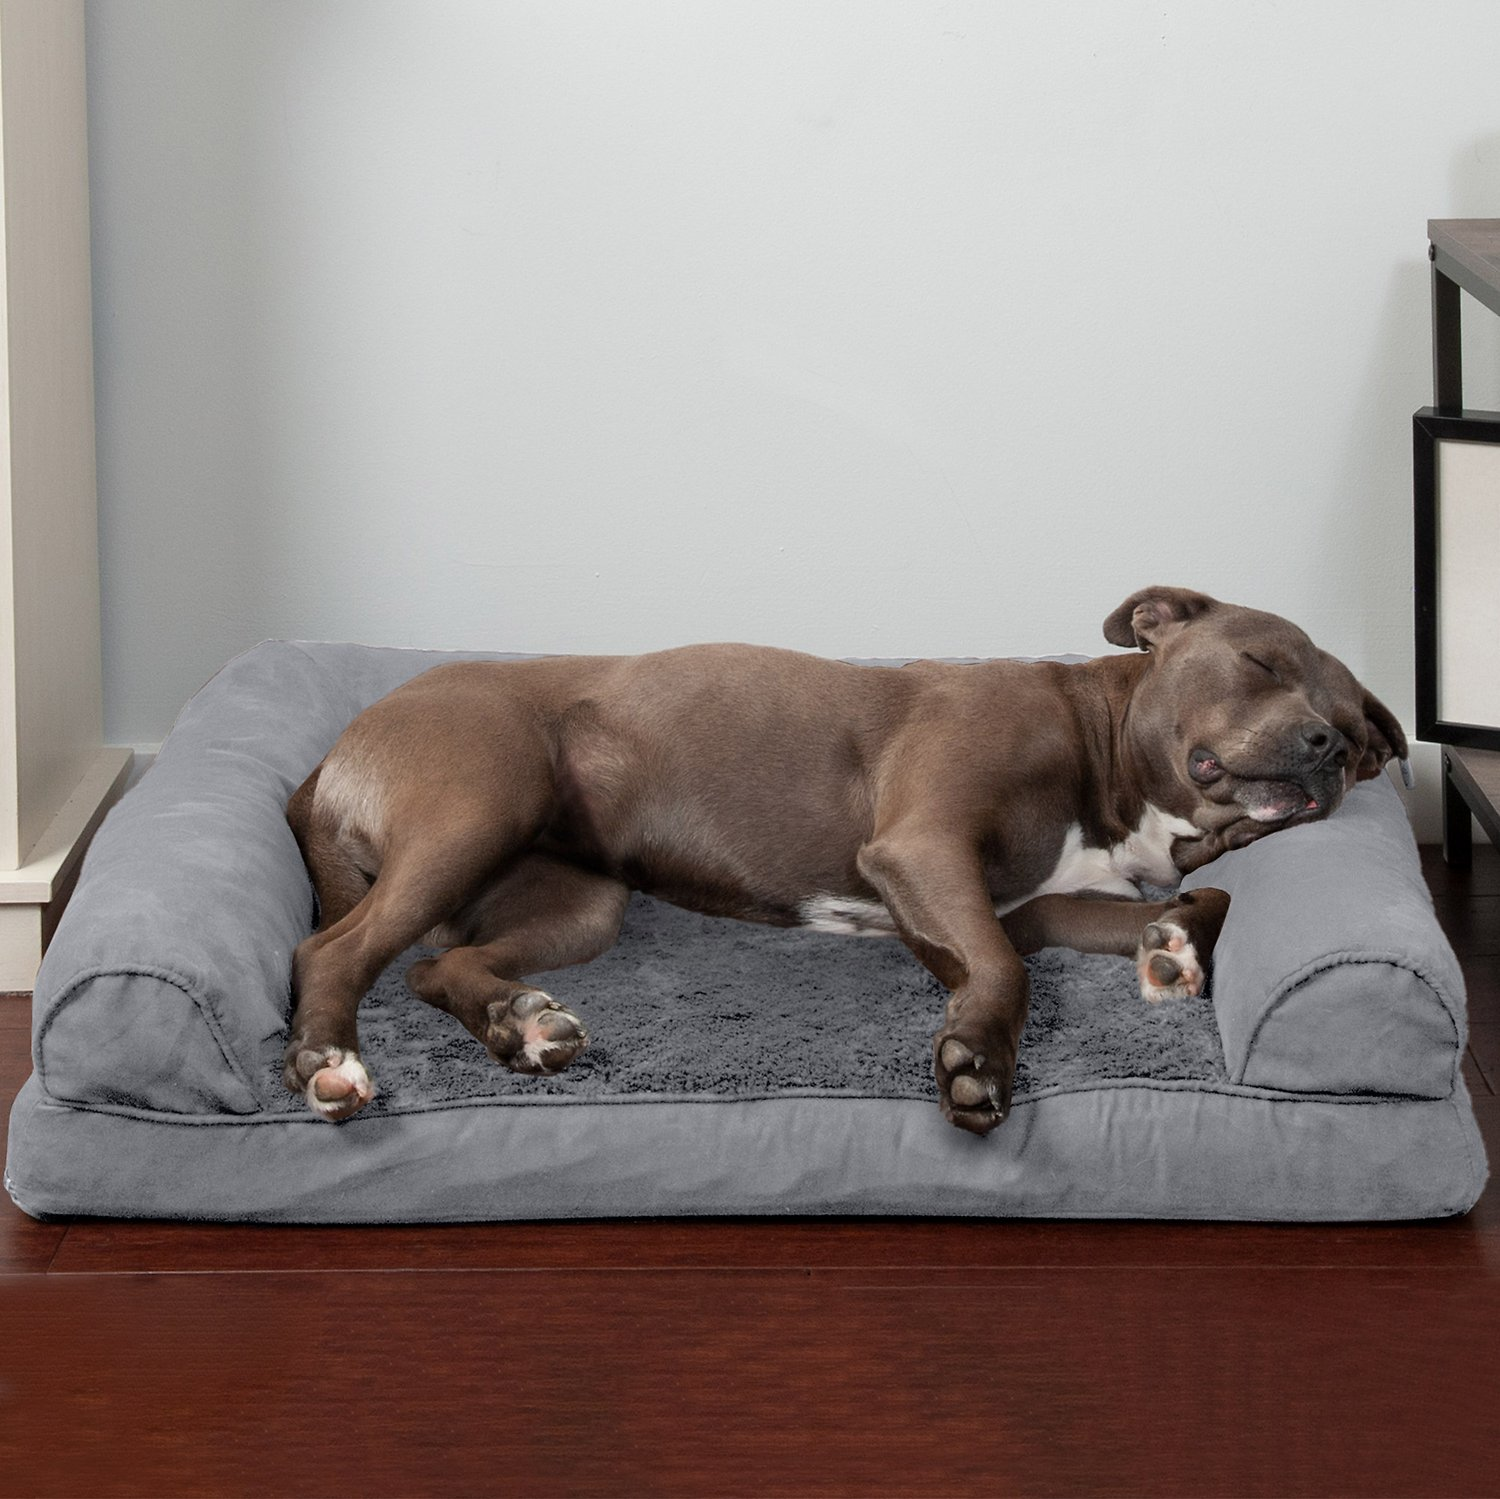 large plush sectional sofa diamond park ave wingback bed furhaven and suede orthopedic dog cat gray